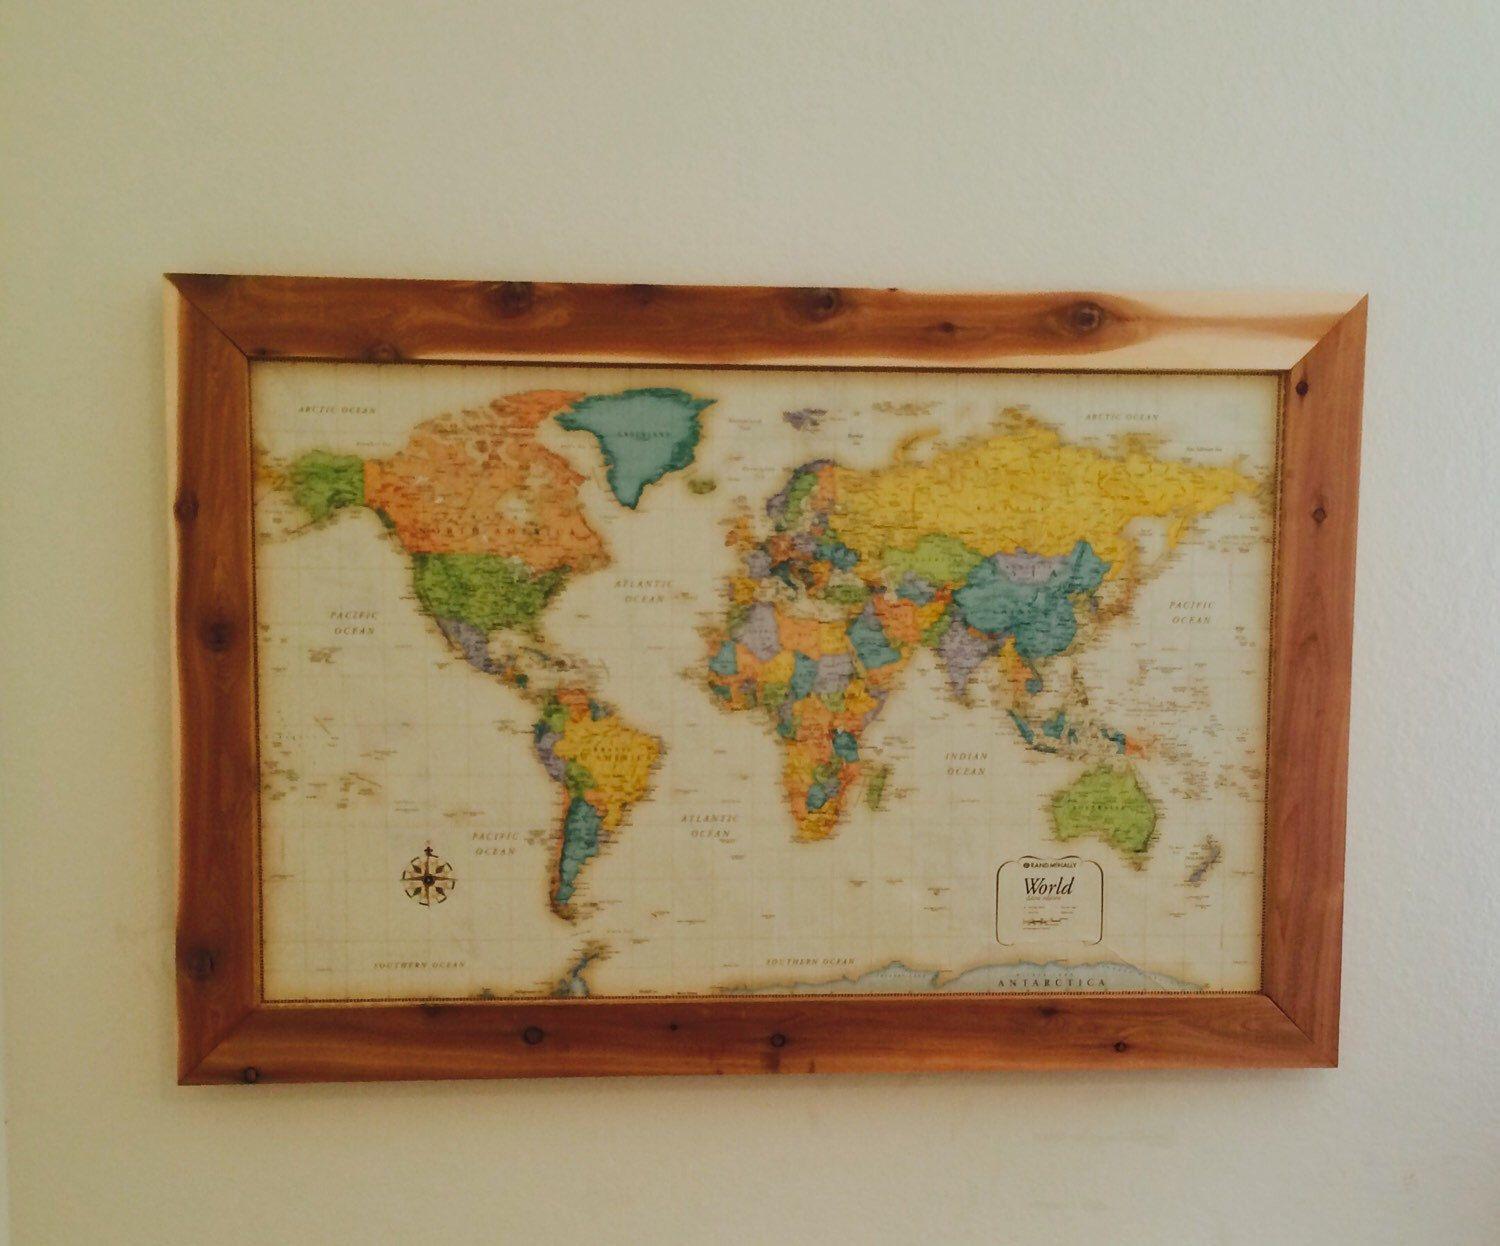 We built this pinboard map custom in order to fit both of our we built this pinboard map custom in order to fit both of our travels into one gumiabroncs Choice Image